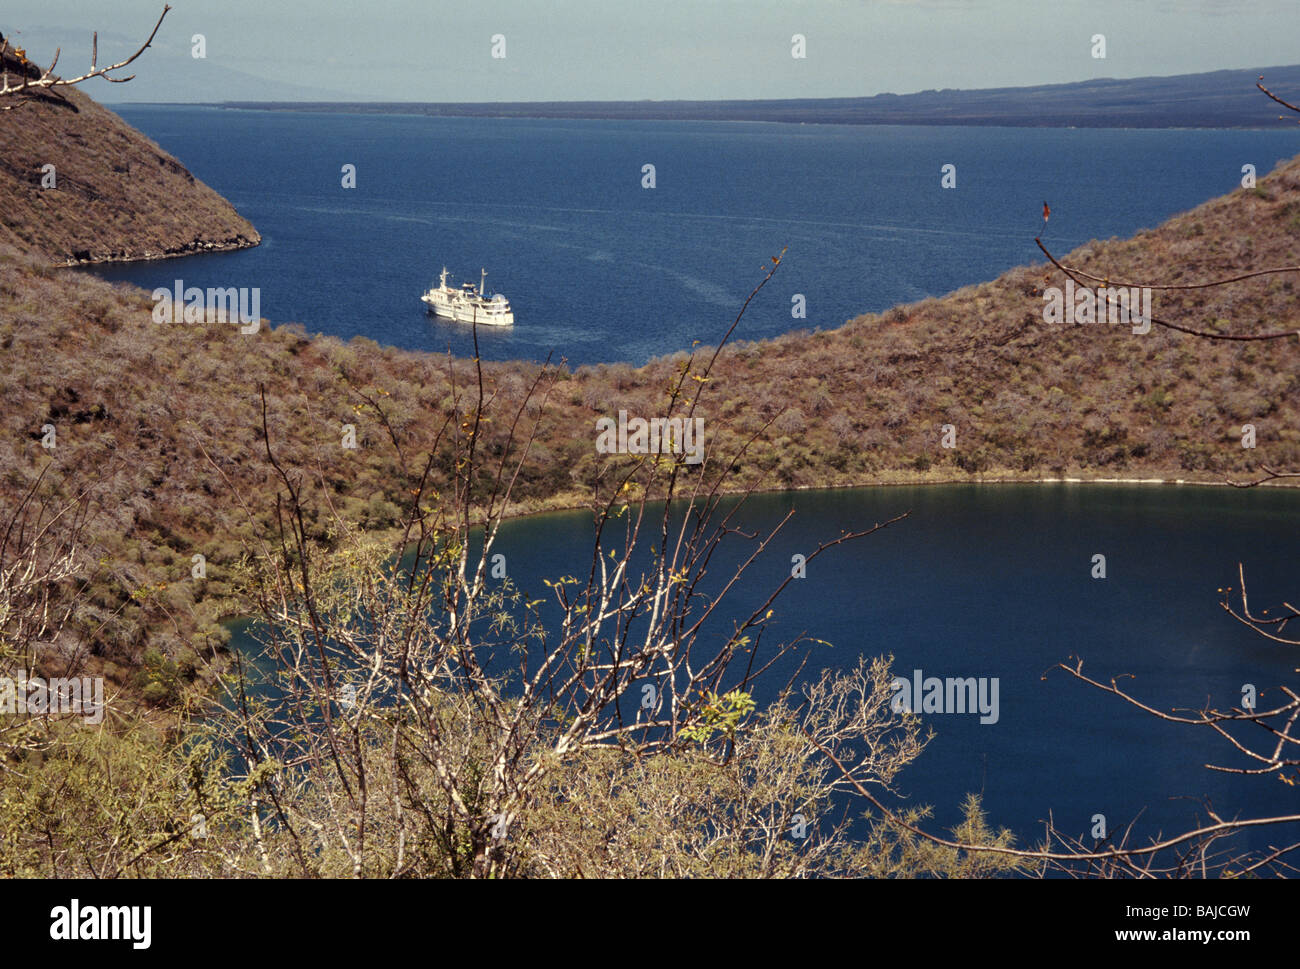 Galapagos-Inseln. Insel Isabela. Blick von oben Tagus Cove in Crater Lake. Stockbild